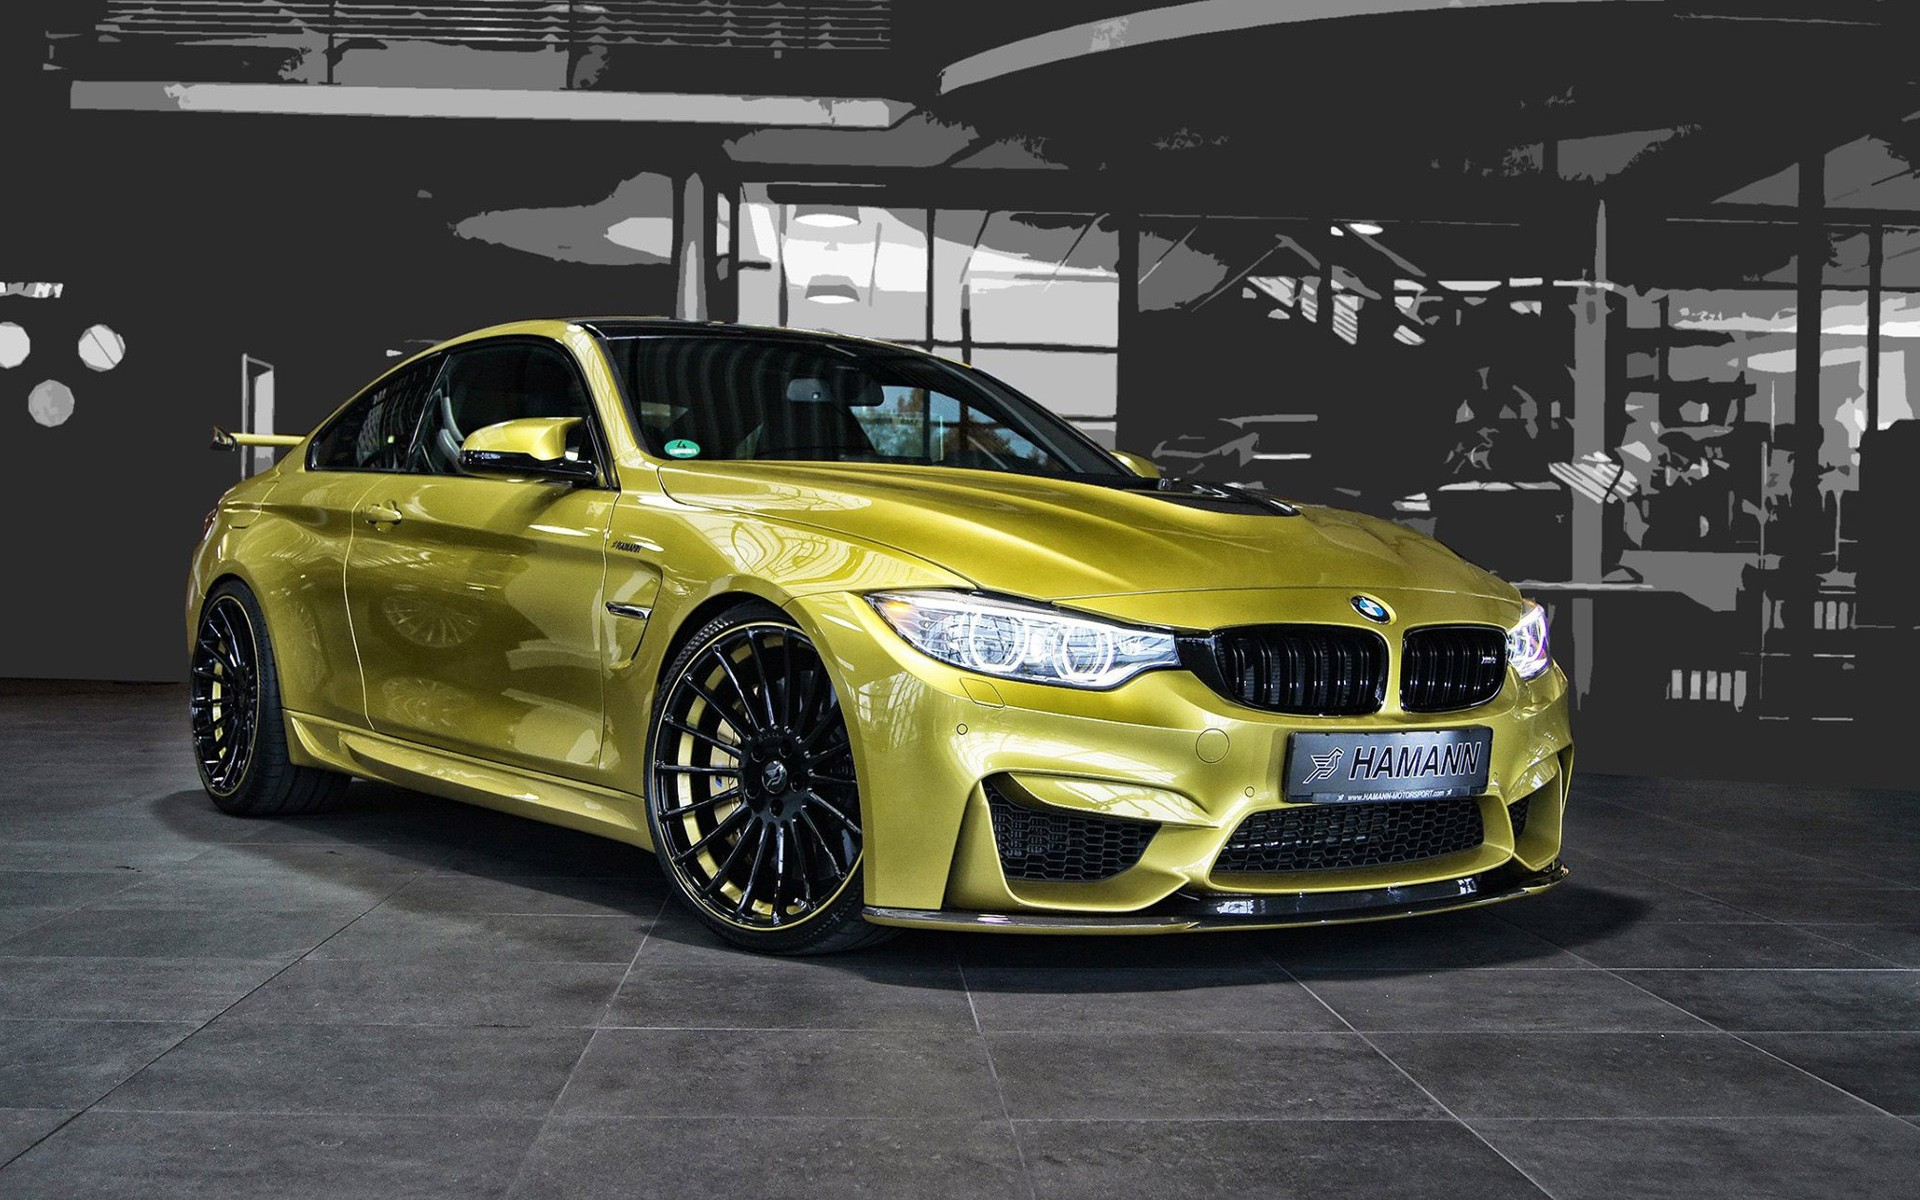 Hamann Bmw F82 M4 Tuning Program Wallpaper Hd Car